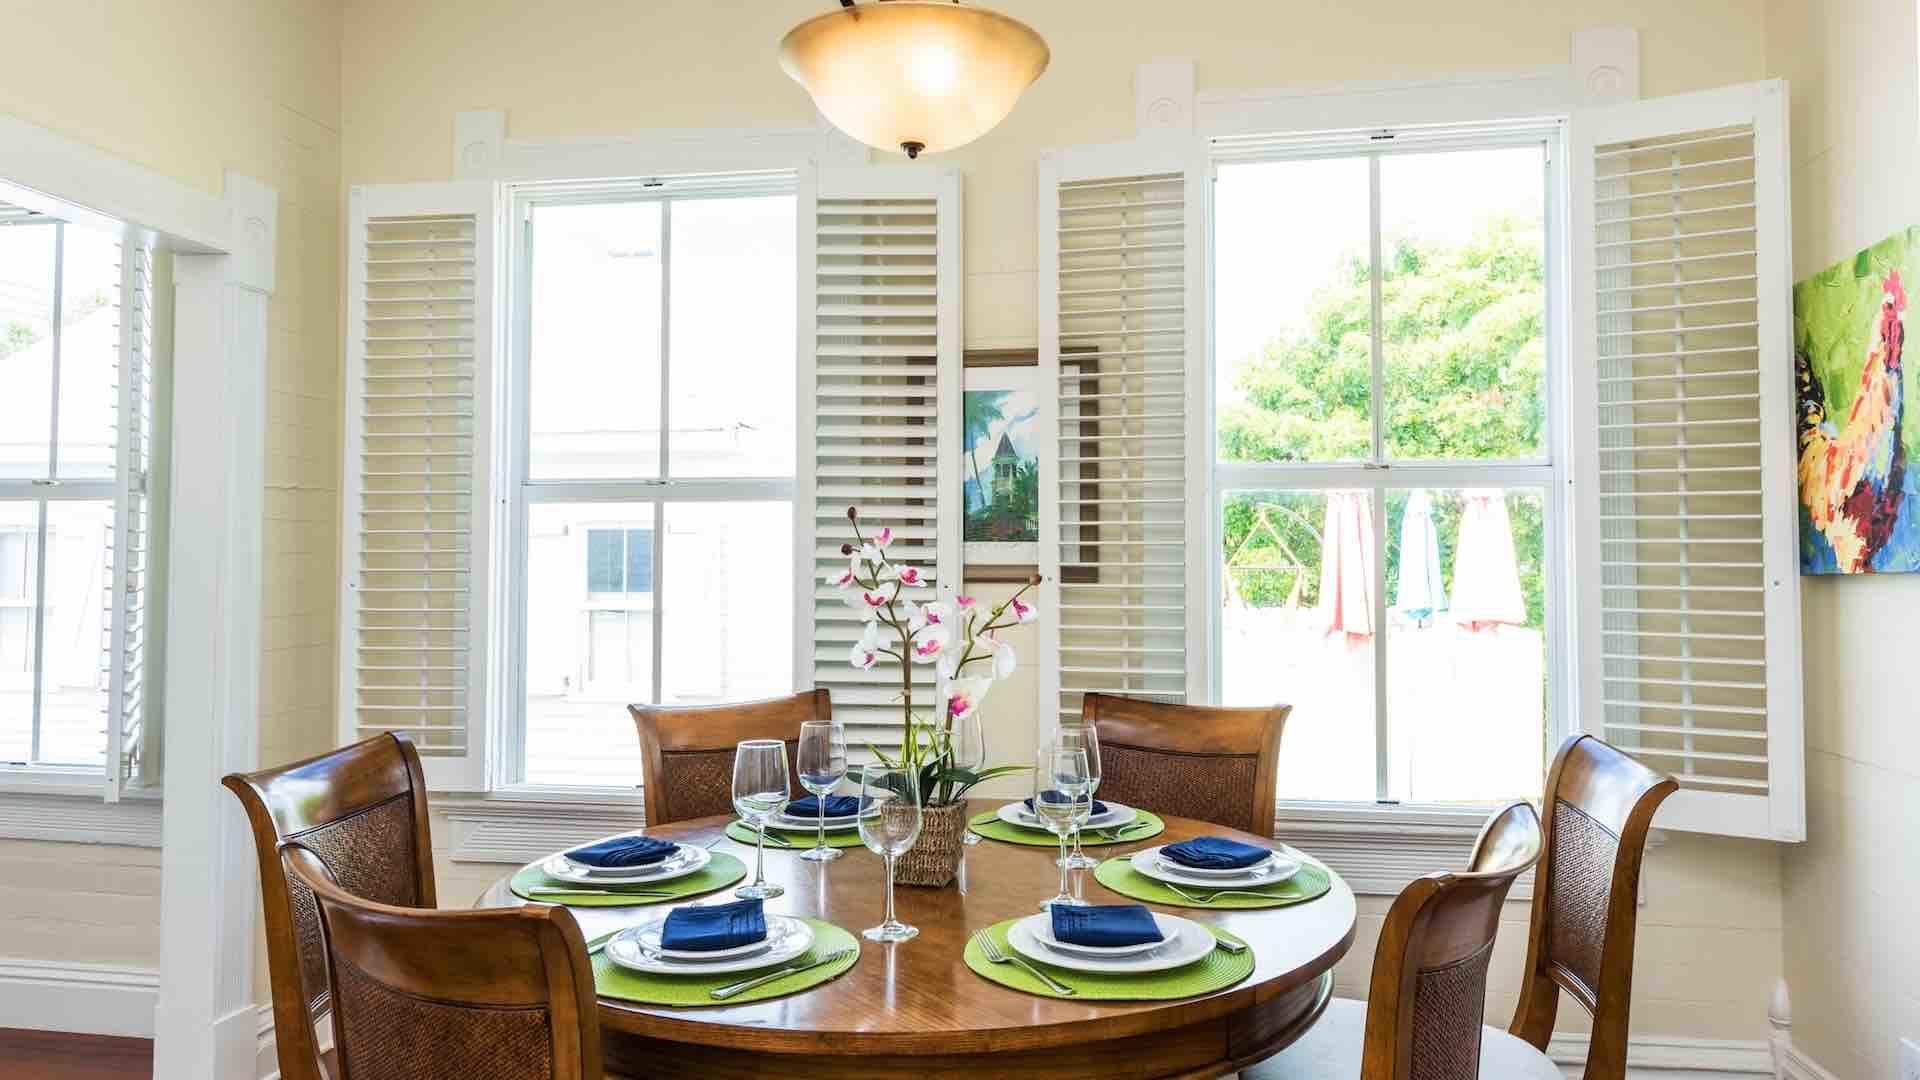 The upstairs condo has a dining table that seats six...